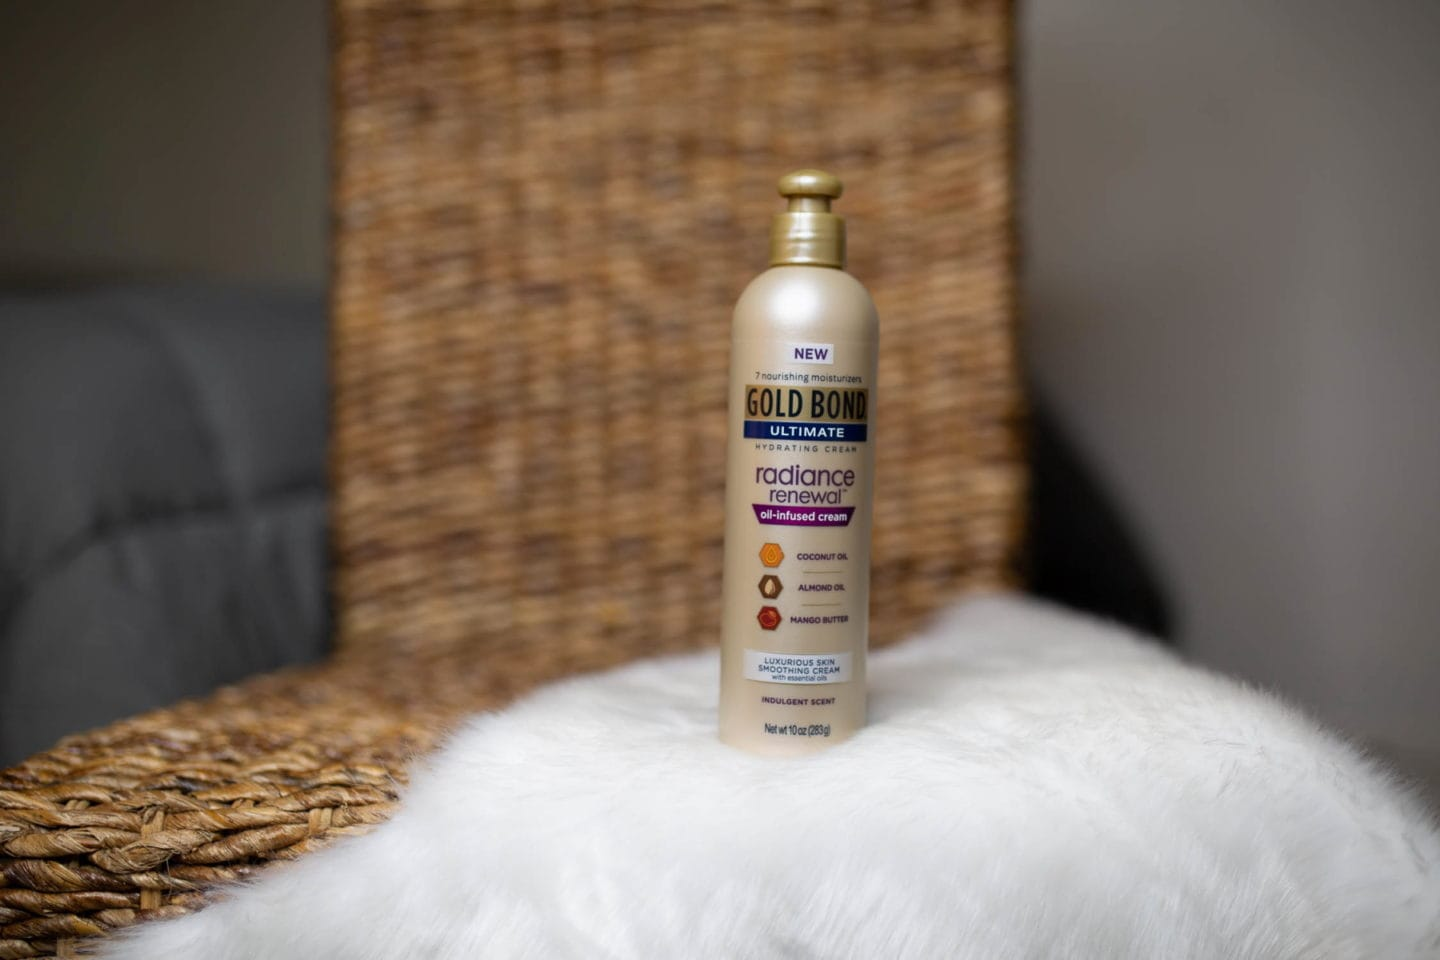 #bodycaretips After hearing so much about Gold Bond Ultimate, I gave the Radiance Renewal a try. I loved it so much that I brought the cream and lotion with me to Alaska. I wrote about the good, bad, and ugly in this blog post. Get the scoop! #moisturizer #moisturizerforoilyskin